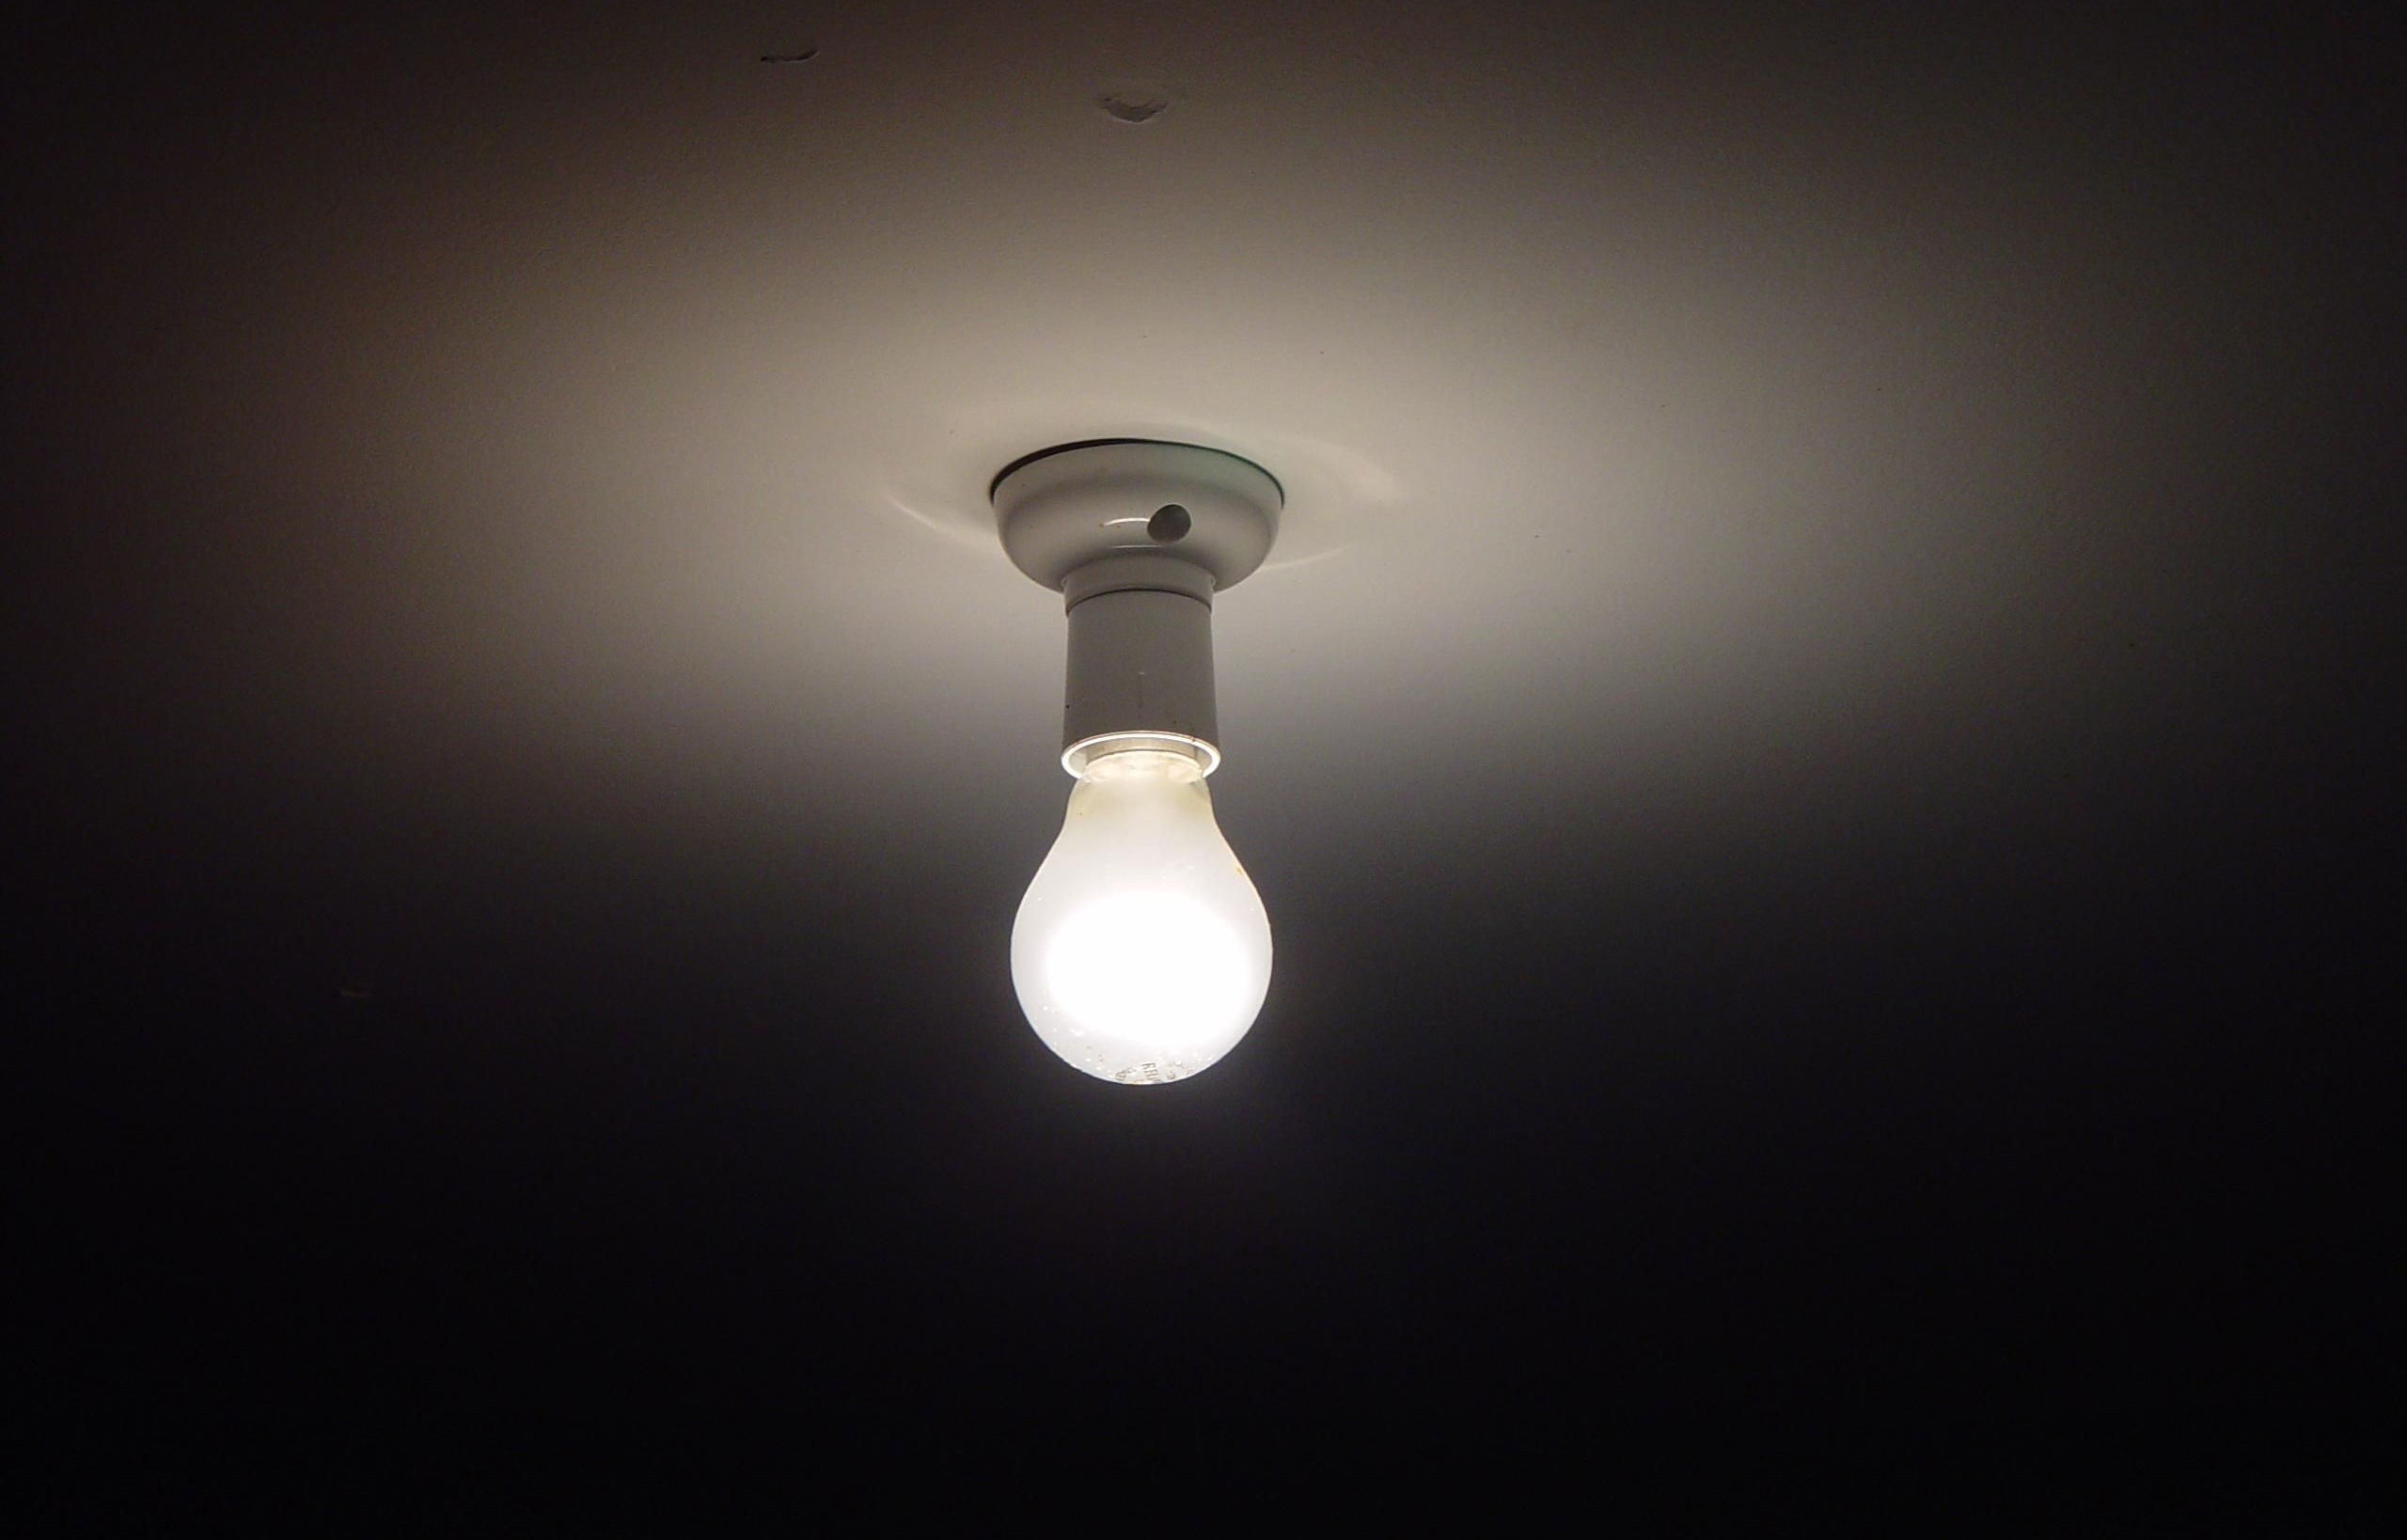 Light bulb switched on